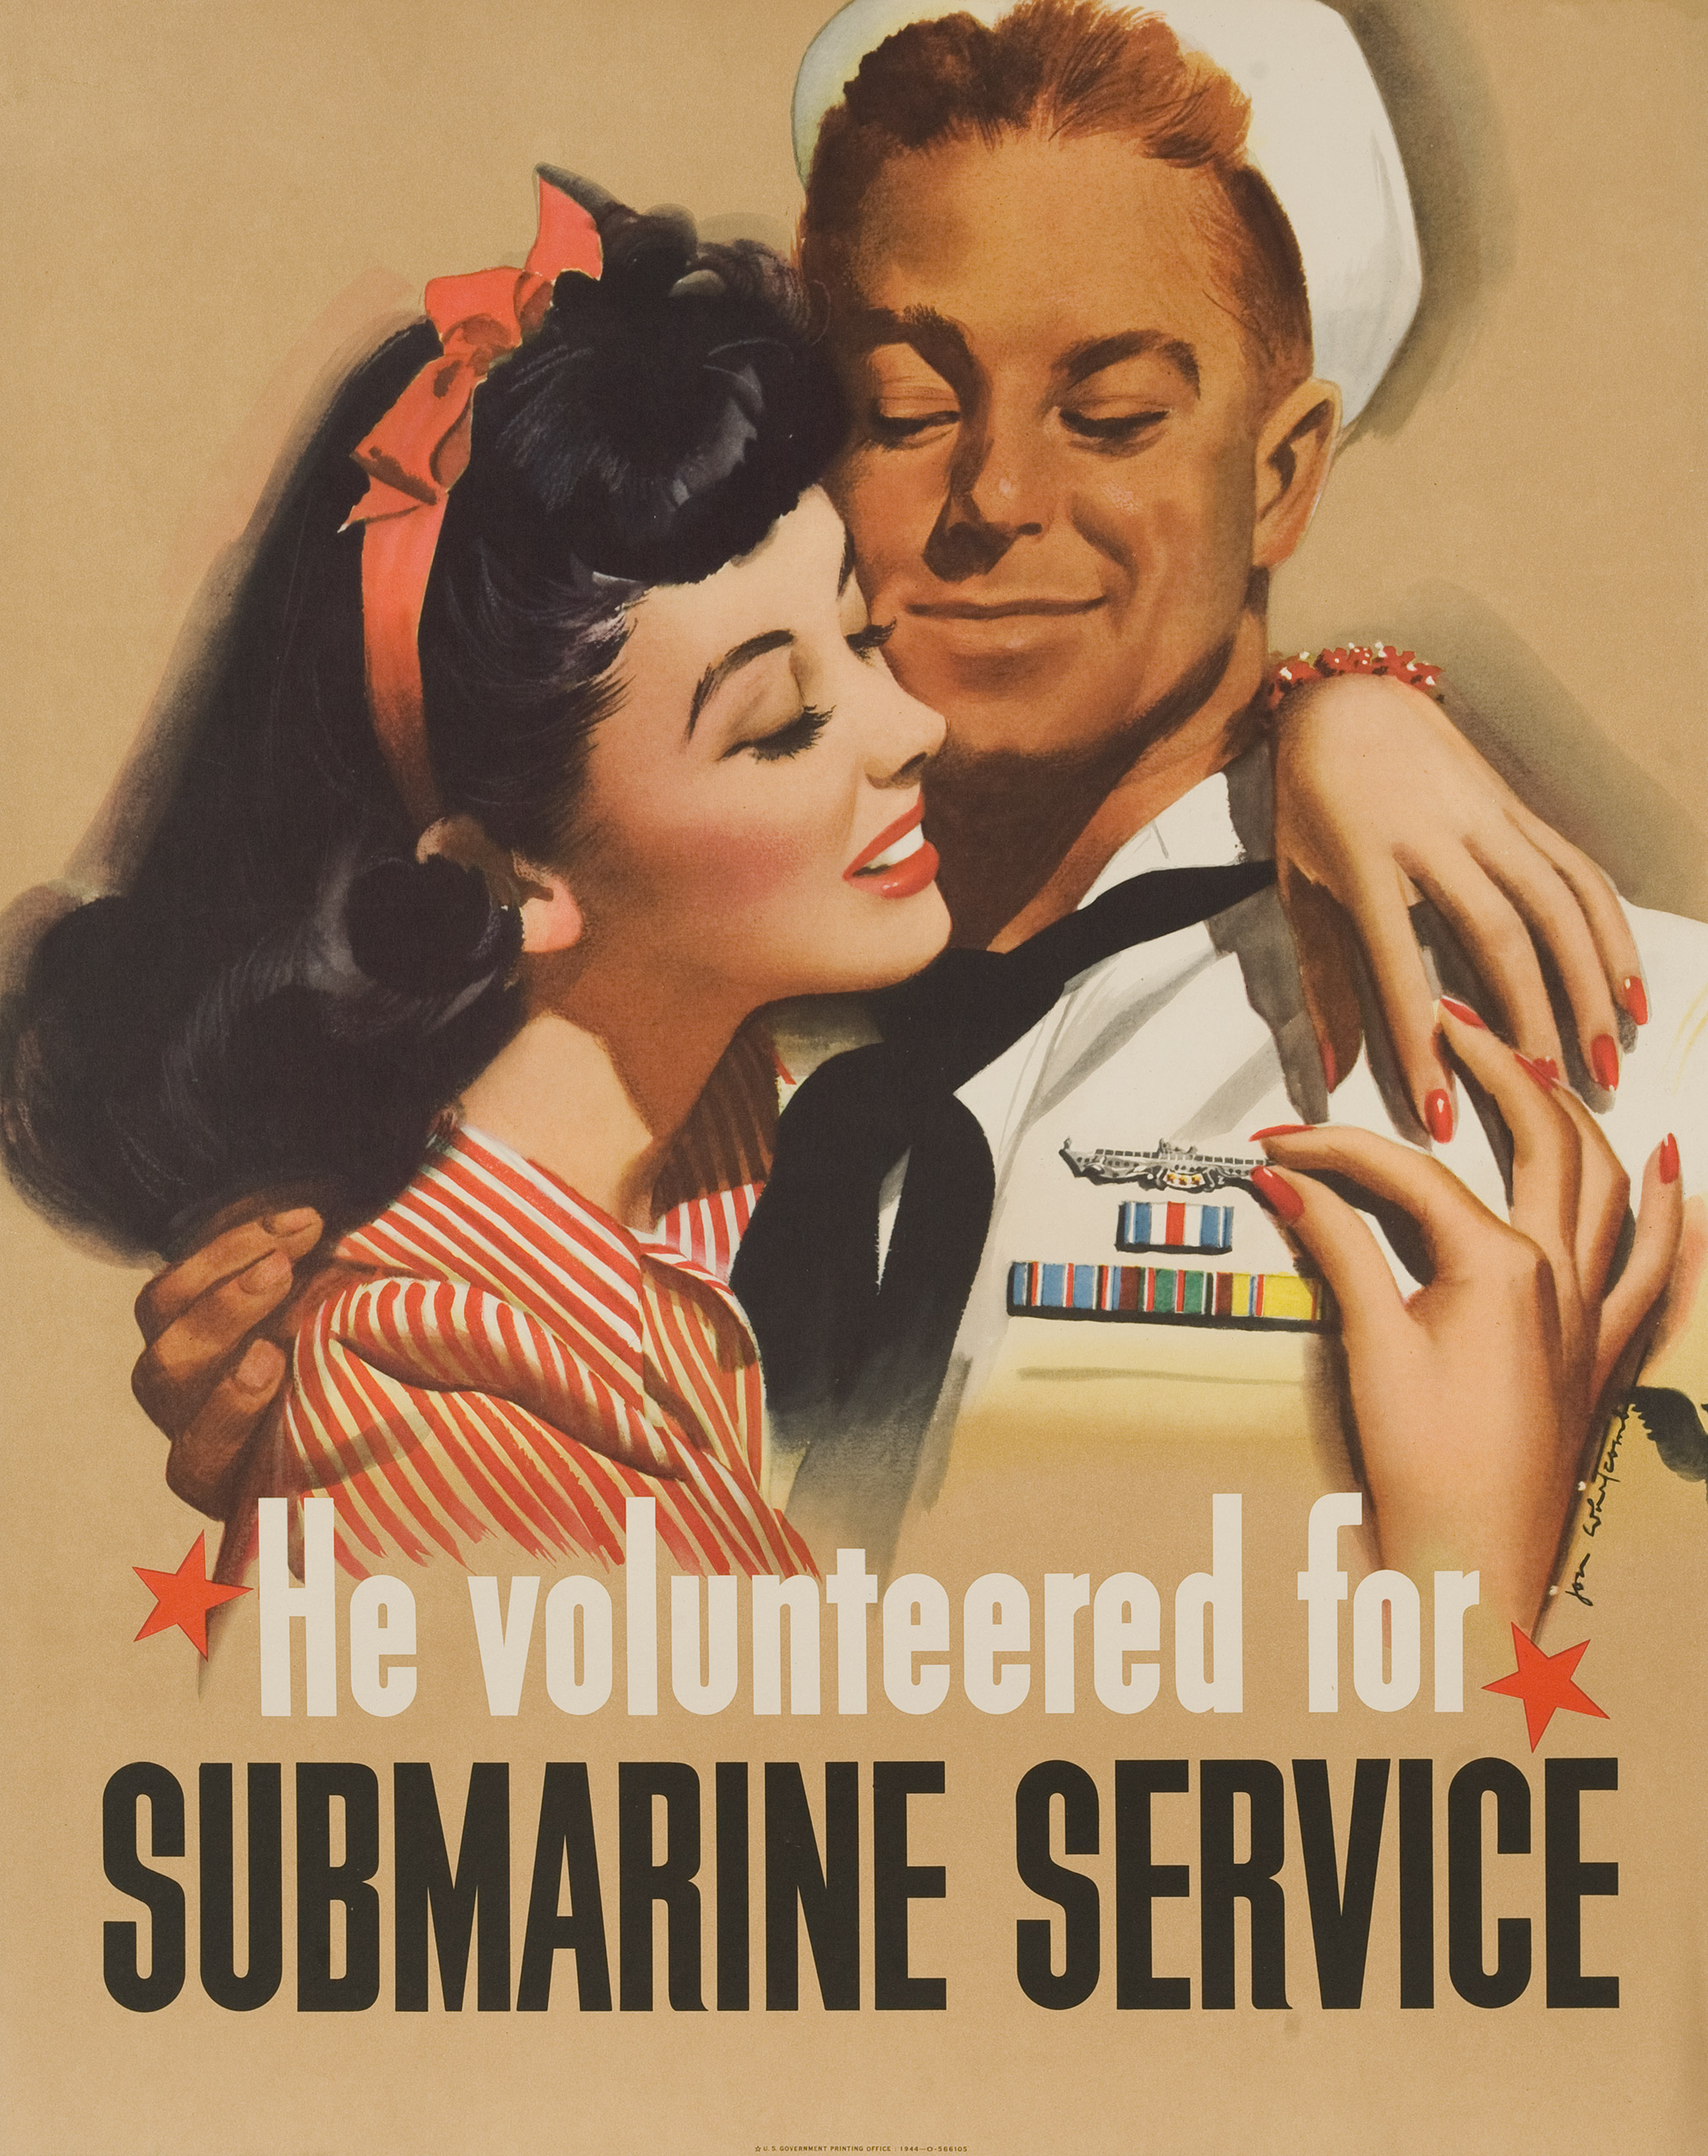 He volunteered for Submarine Service. U.S. Government Printing Office, ca. 1944.